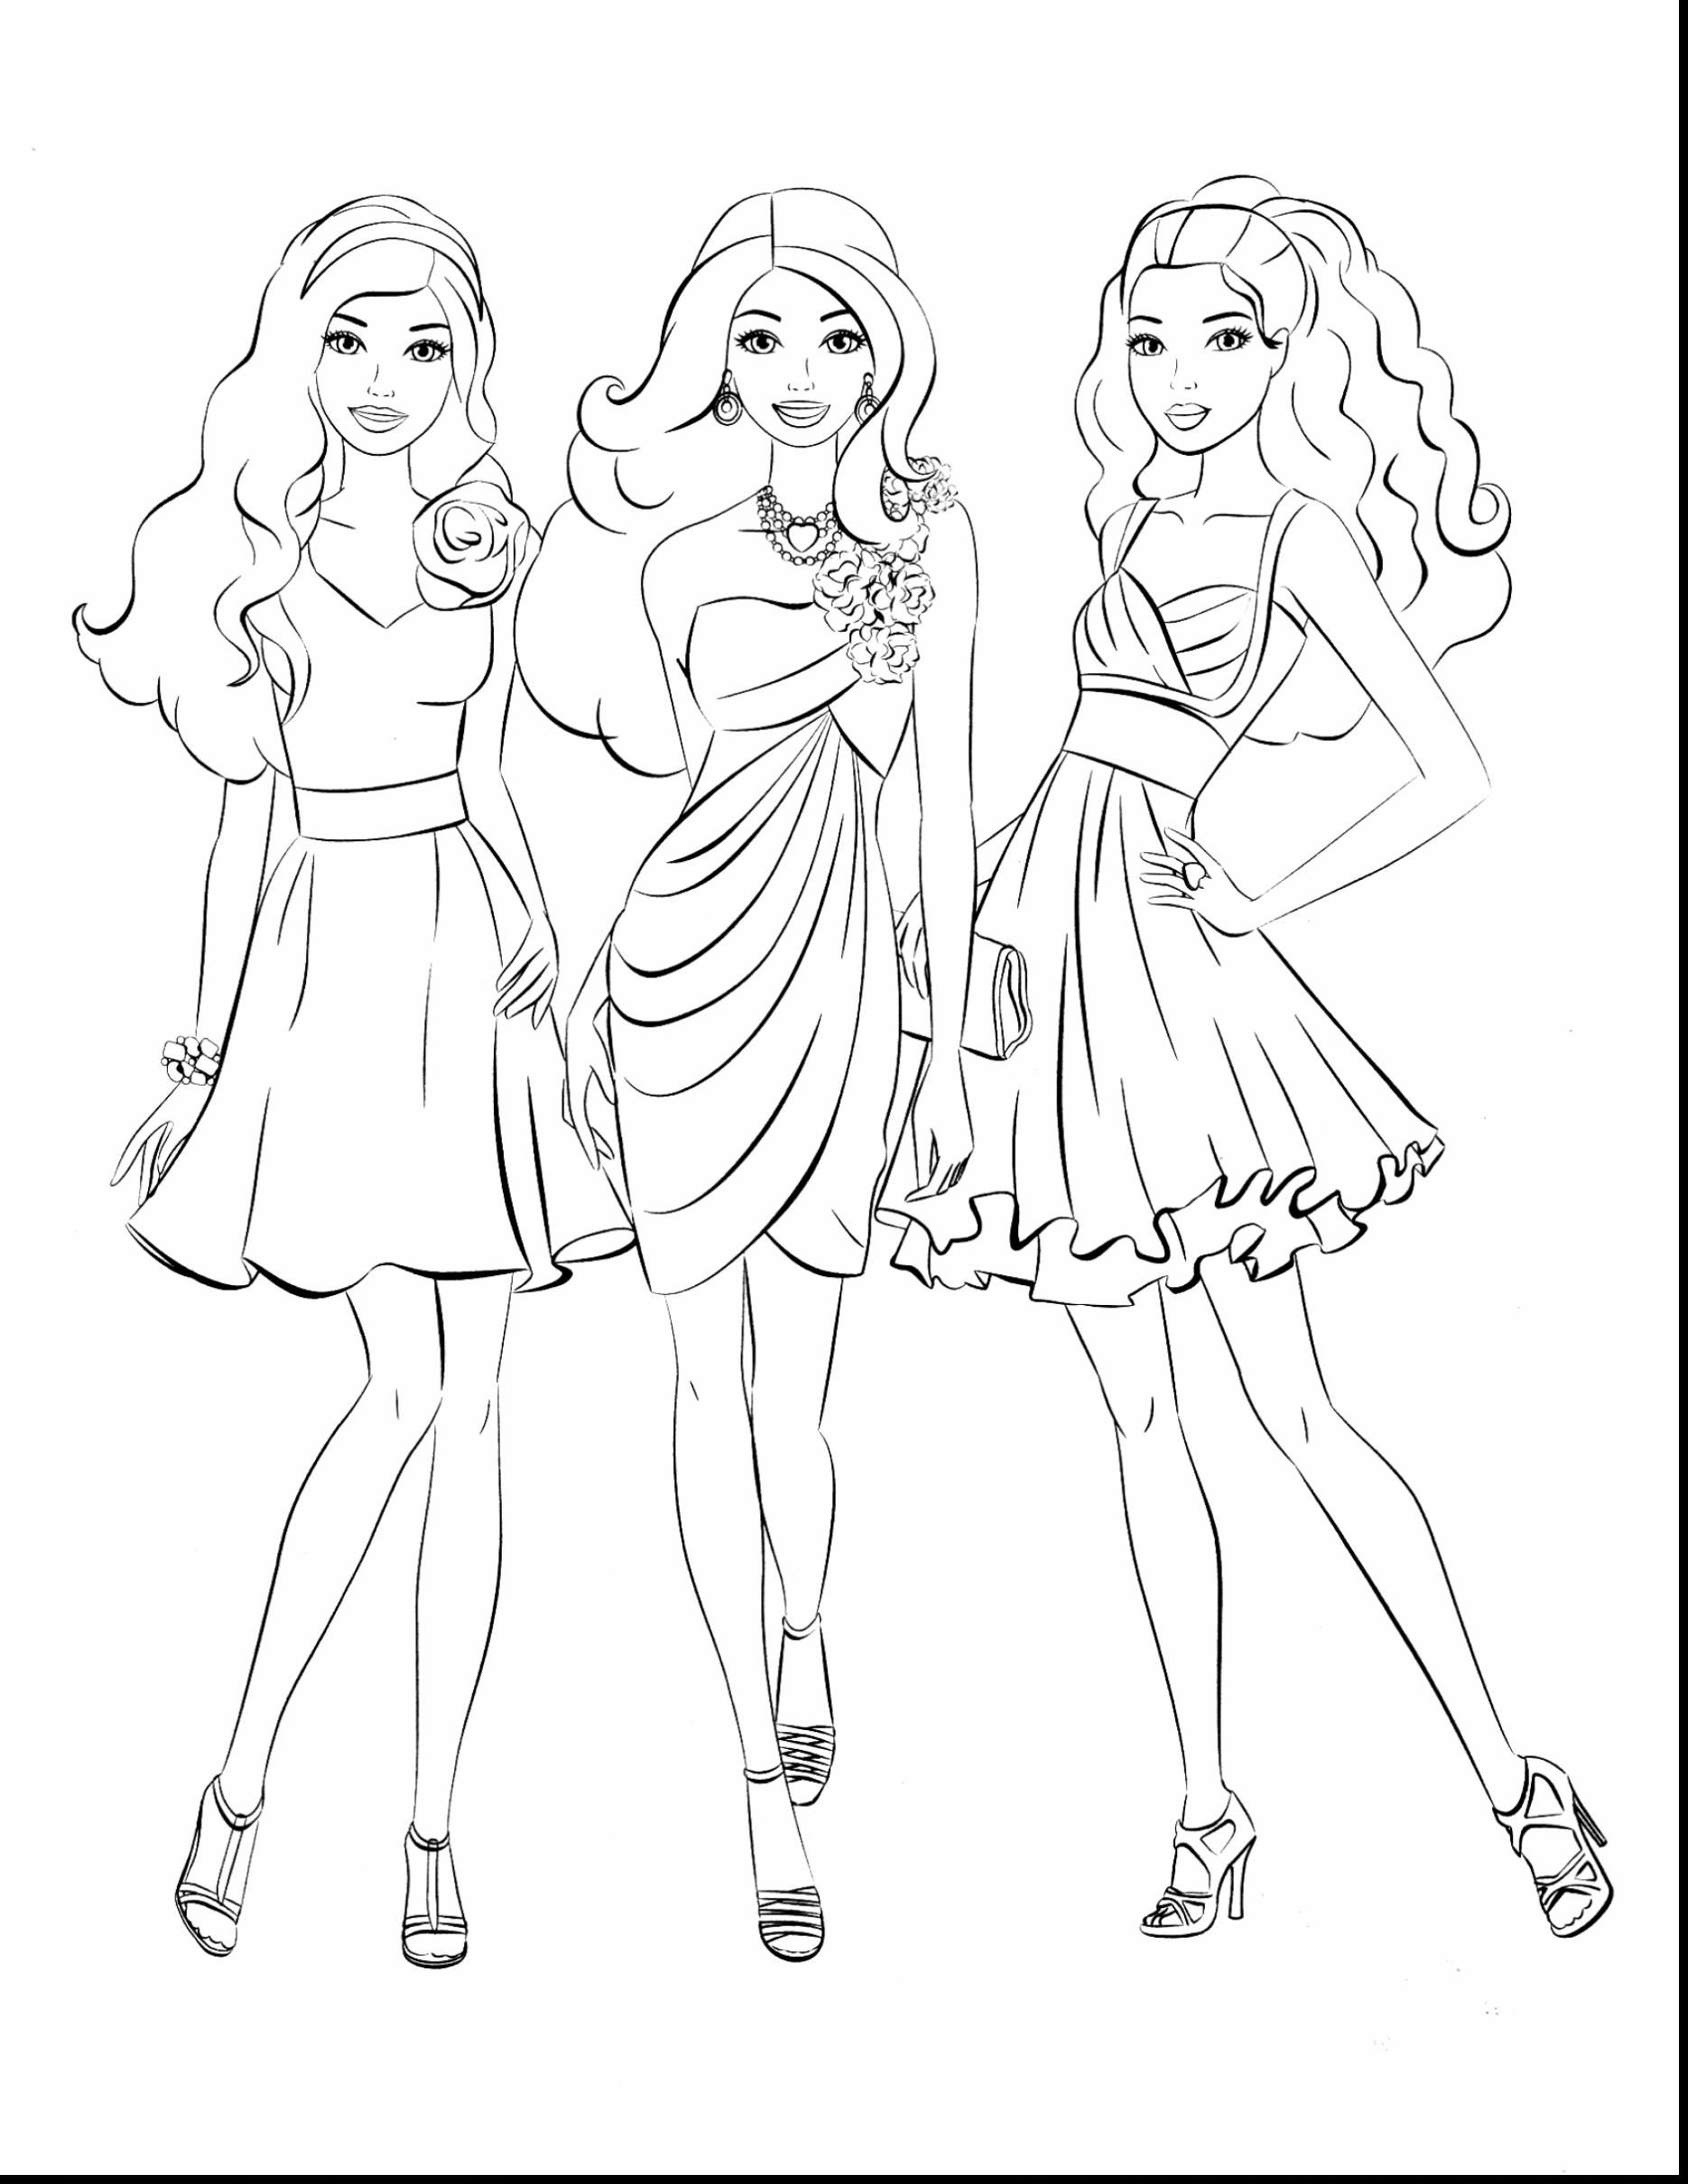 Barbie Surfer Girl Coloring Pages Barbie Coloring Pages Princess Coloring Pages People Coloring Pages